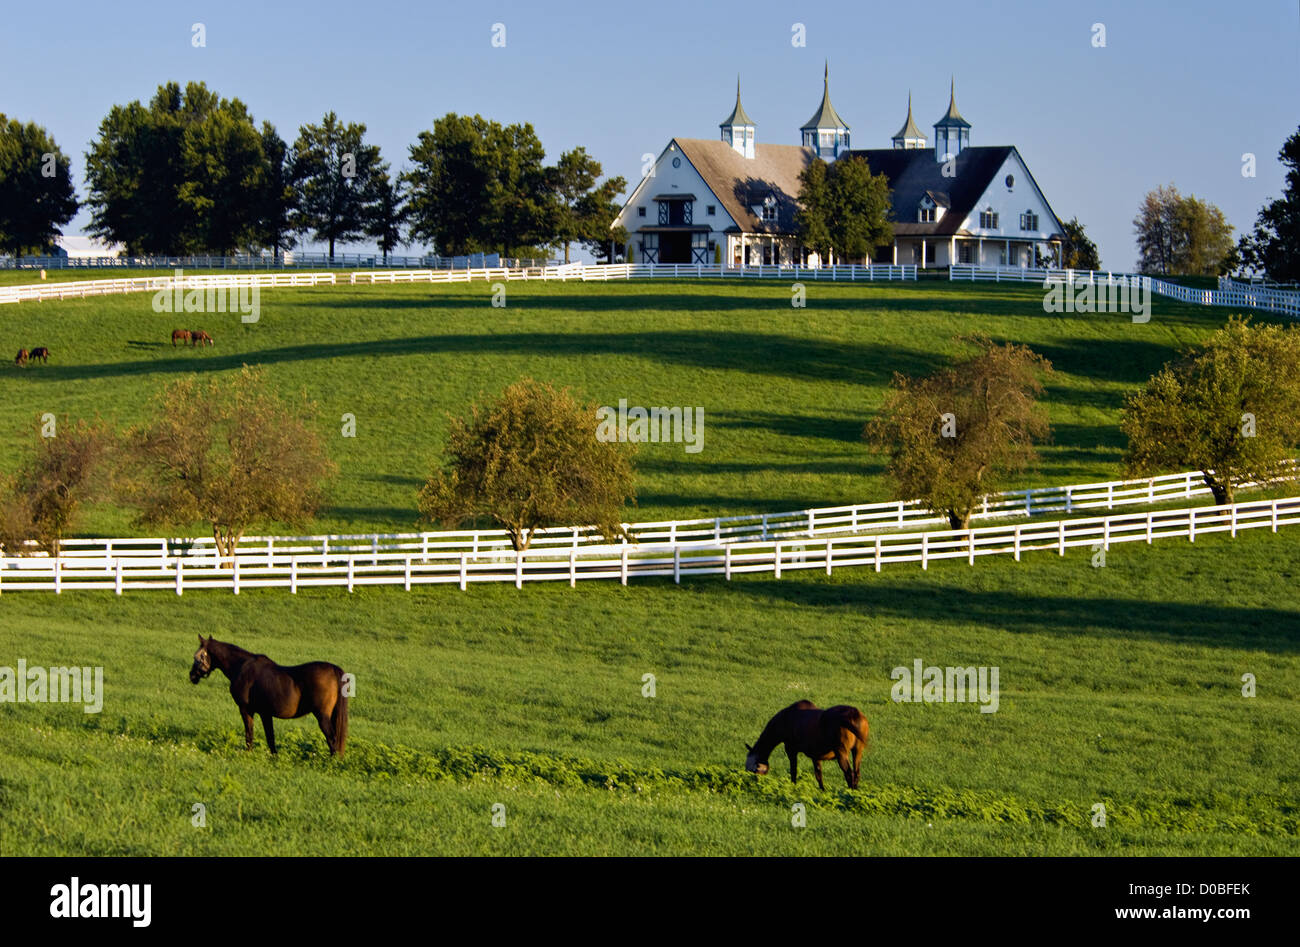 Thoroughbreds Grazing in Paddock at Manchester Farm in Fayette County, Kentucky - Stock Image